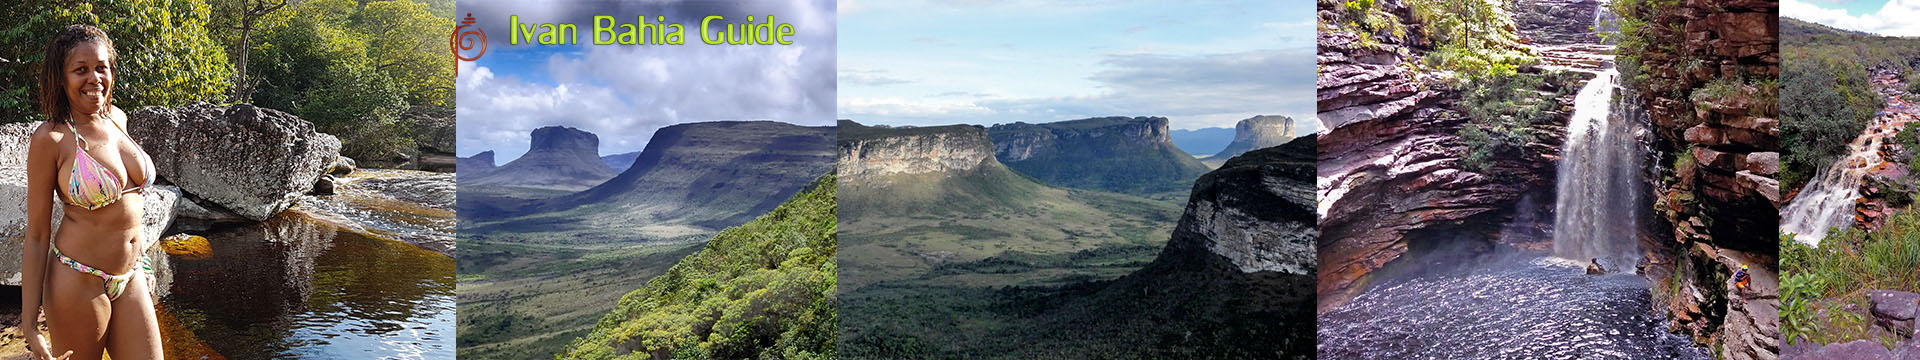 Ivan Bahia tour-guide / Chapada Diamantina National Park (aka 'the Brazilian Grand Canyon') mountain views, Canto das Aguas Hotel hashtag : #ChapadaDiamantinaGuide #ChapadaDiamantina #ChapadaDiamantinaTrekking #BahiaMetisse #ToursByLocals #fernandobingretourguide #IBG #FotosBahia #DiamantinaMountains #IvanBahiaReizen #IvanChapadaDiamantinaGuide #ValeDoPati #PatiValey #ValeDoCapao #Trajano #Zentur #chapadatrekking #TrilhasDiamantina #morodopaiinacio #lencois #poçoazul #ecoturismo